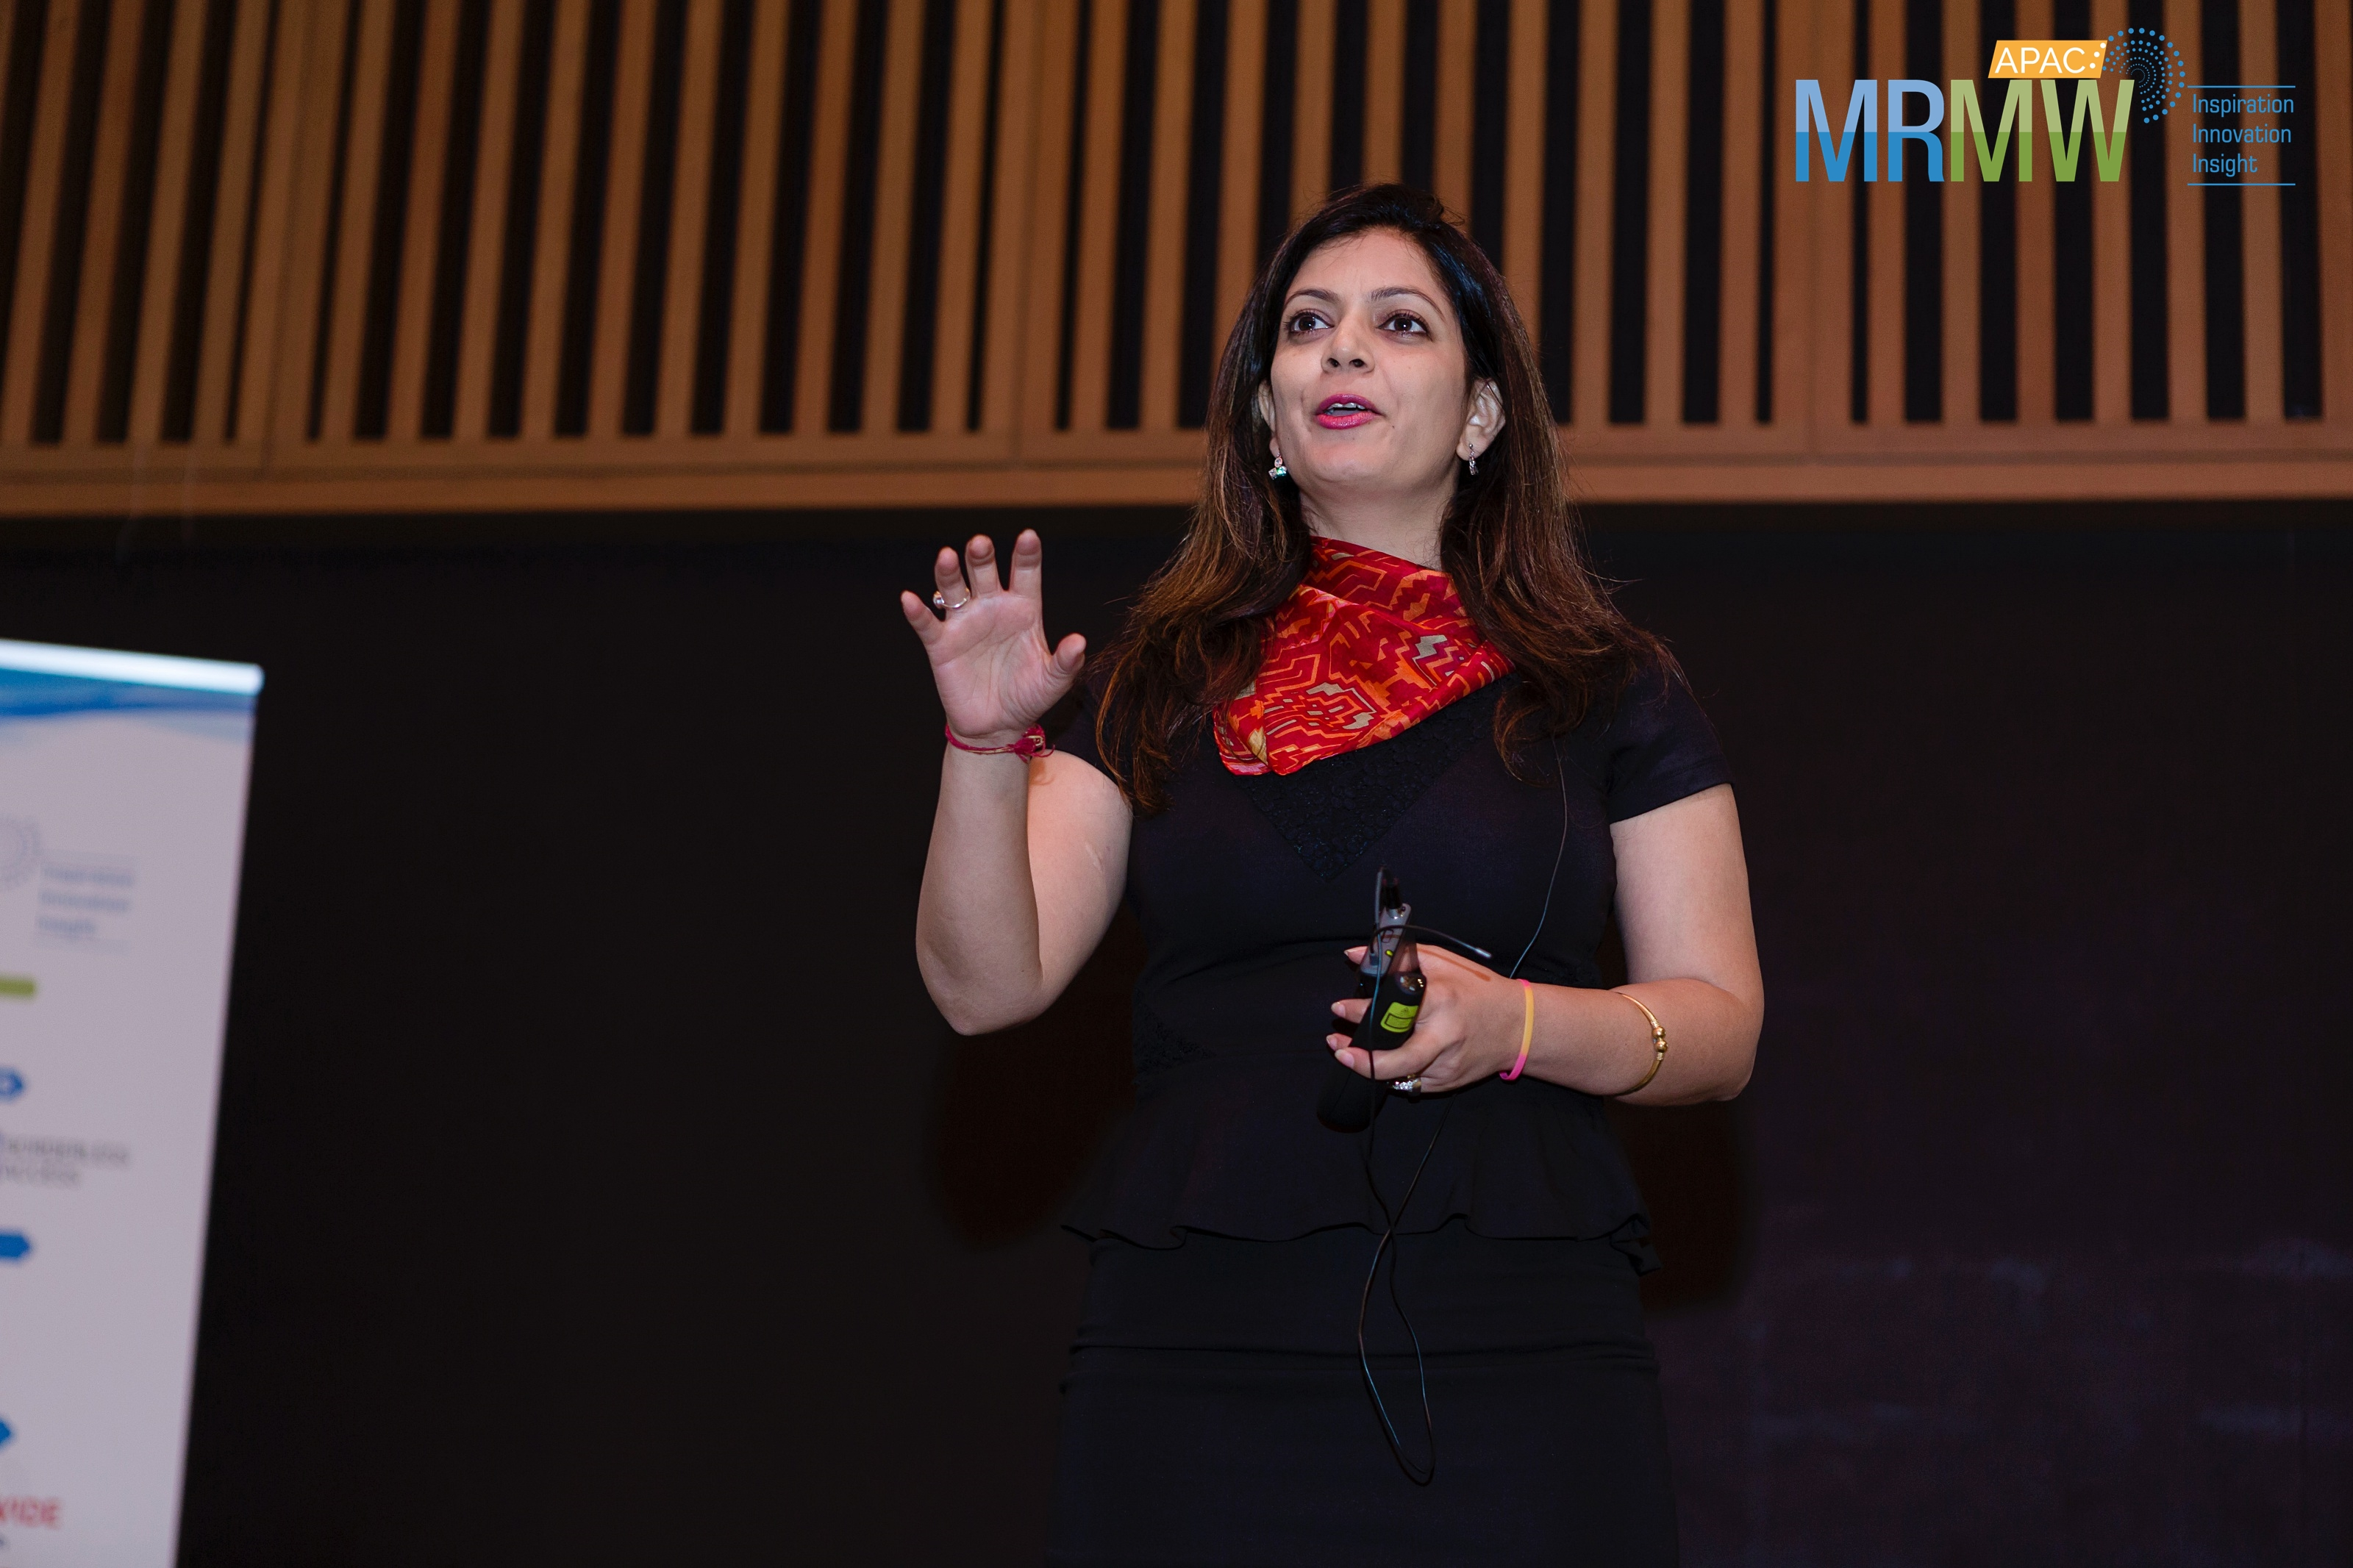 Anamika Sirohi from Hindware at MRMW APAC 2018